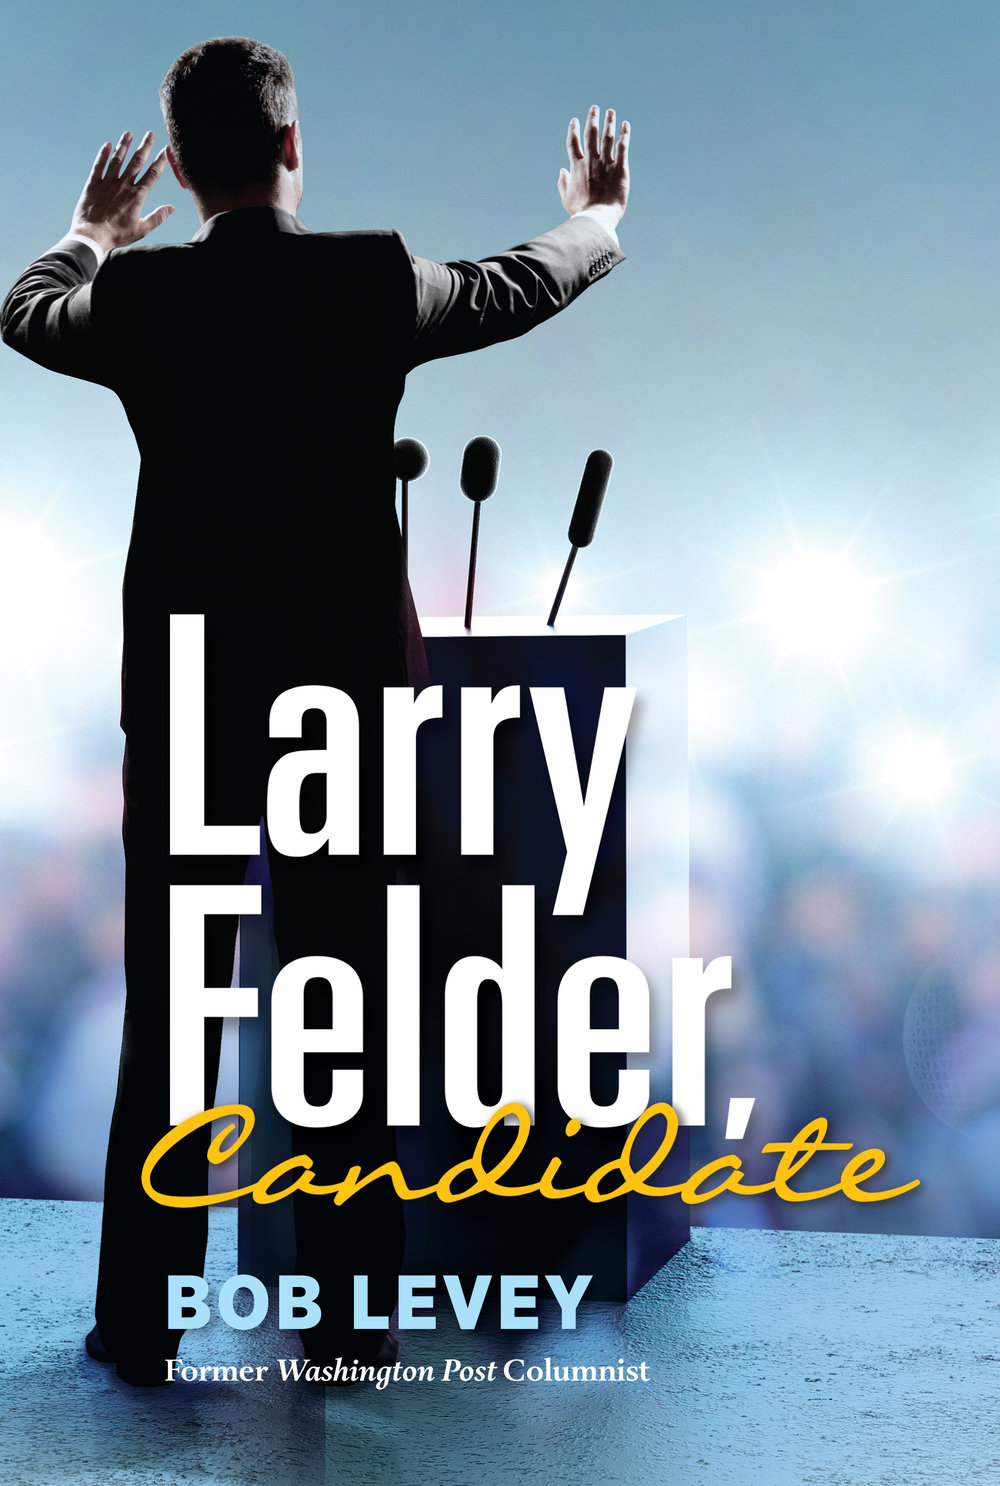 Store - Find out how you can get your copy of Larry Felder, Candidate.